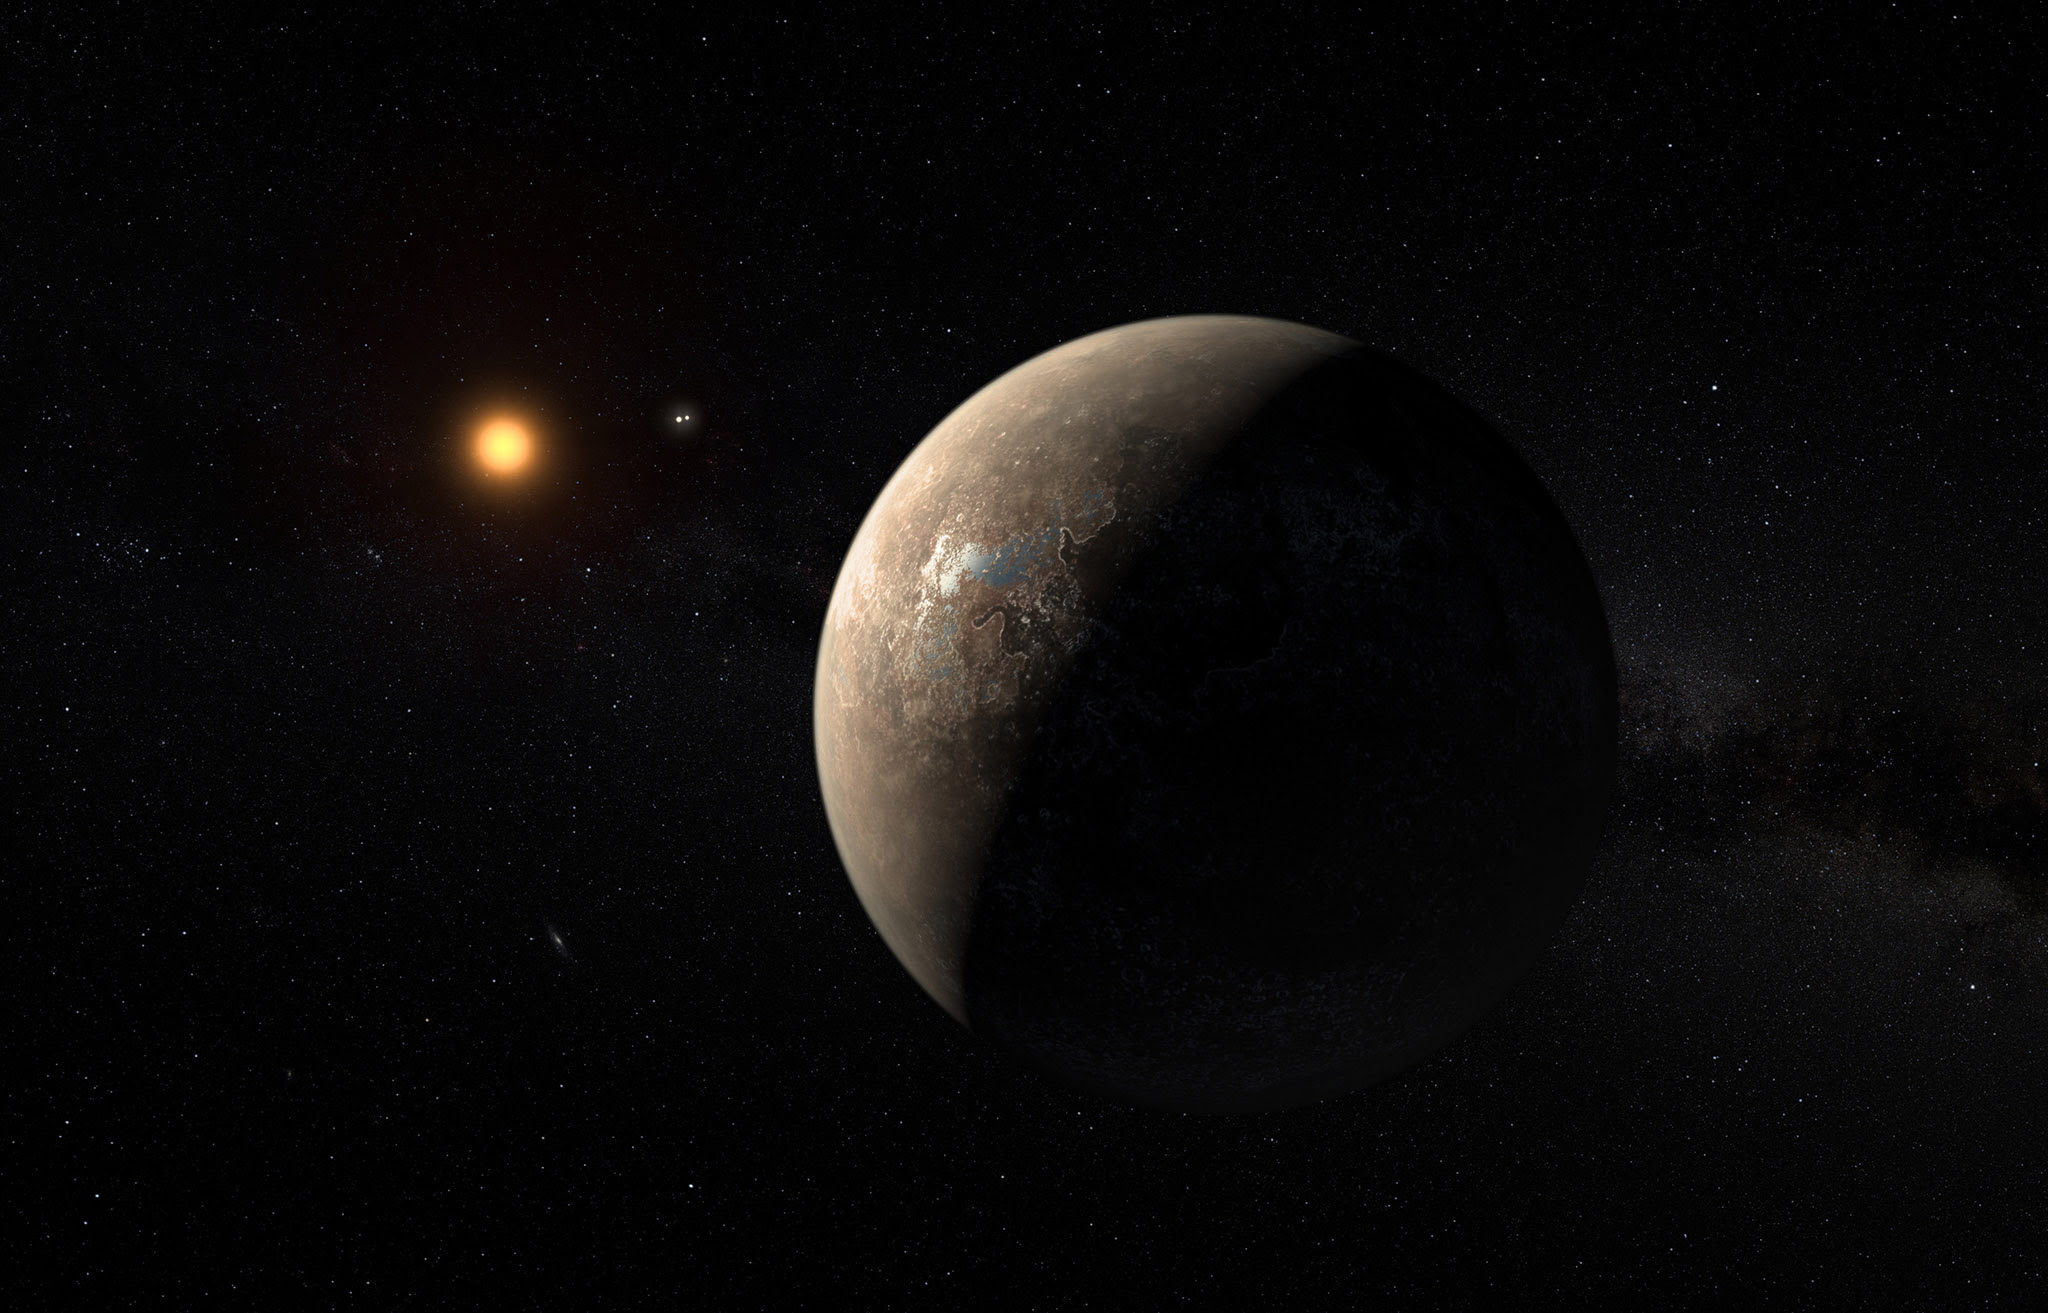 Undated handout artist's impression issued by the European Southern Observatory showing the planet Proxima b orbiting the red dwarf star Proxima Centauri, the closest star to the Solar System. The rocky planet, that may harbour life, has been discovered in another solar system just four light years from Earth, close enough to be reached by future space missions. PRESS ASSOCIATION Photo. Issue date: Wednesday August 24, 2016. See PA story SCIENCE Planet. Photo credit should read: ESO/M. Kornmesser/PA Wire  NOTE TO EDITORS: This handout photo may only be used in for editorial reporting purposes for the contemporaneous illustration of events, things or the people in the image or facts mentioned in the caption. Reuse of the picture may require further permission from the copyright holder.